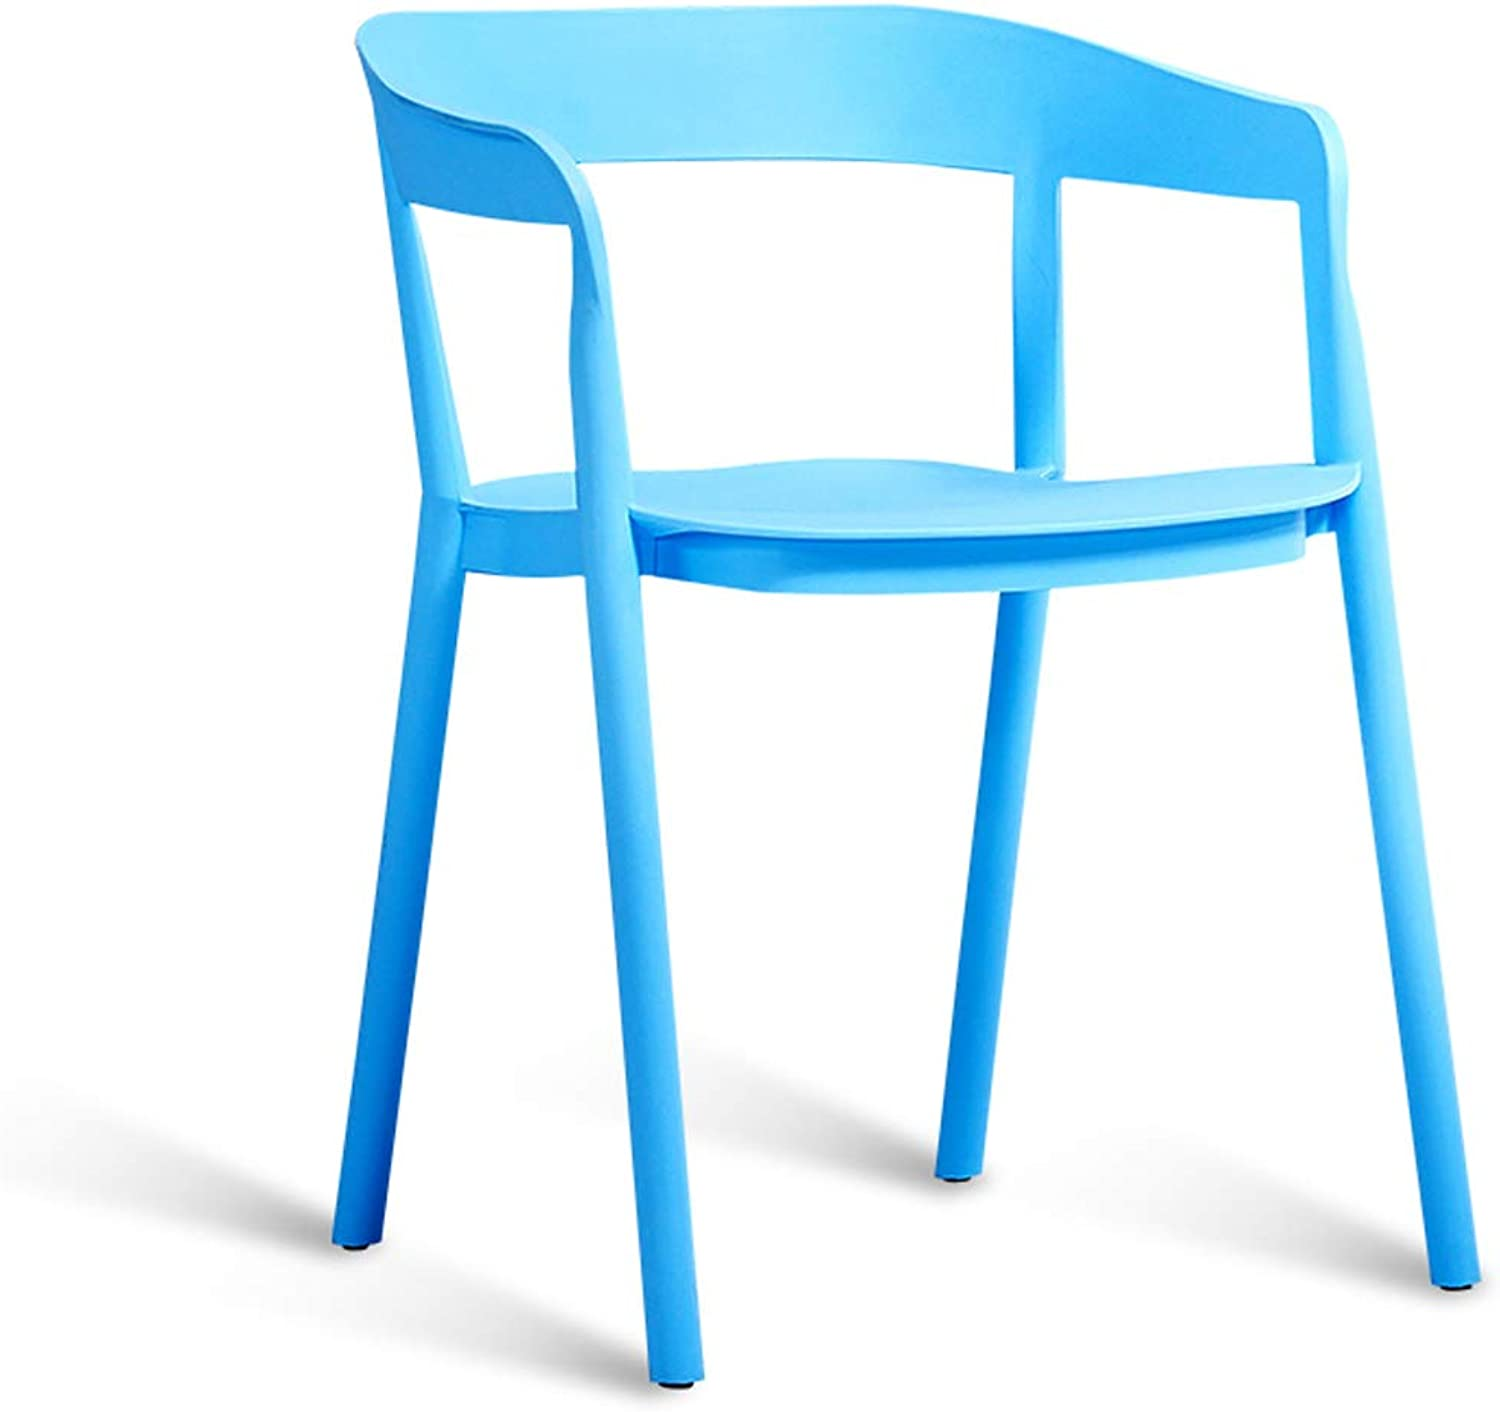 LRW Nordic Minimalist Study Chairs, Adult Backrest Chairs, Creative Leisure Stools, Fashionable Plastic Armchairs, bluee